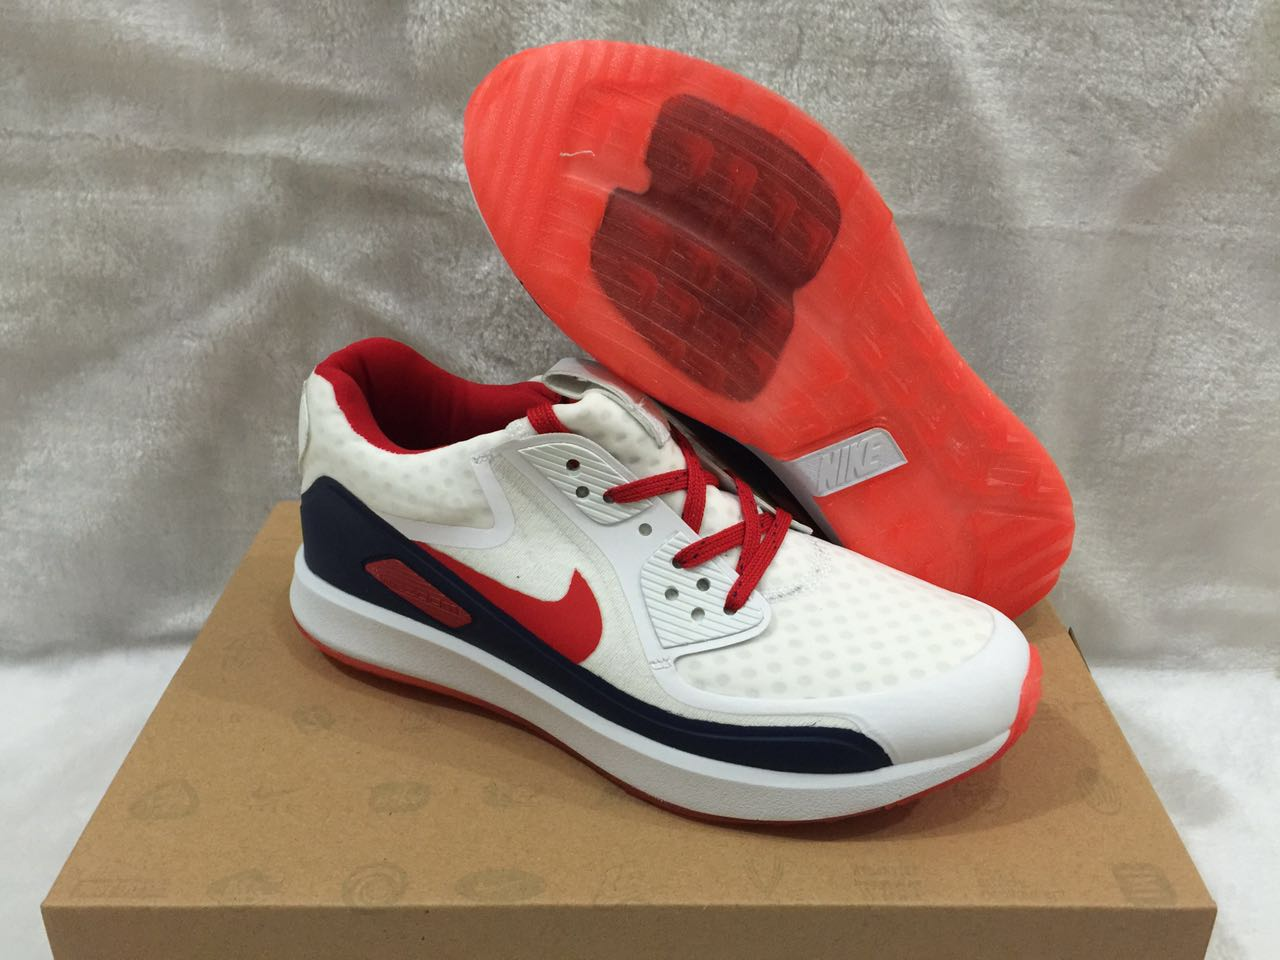 Nike Zoom 90 IT White Red Black Shoes